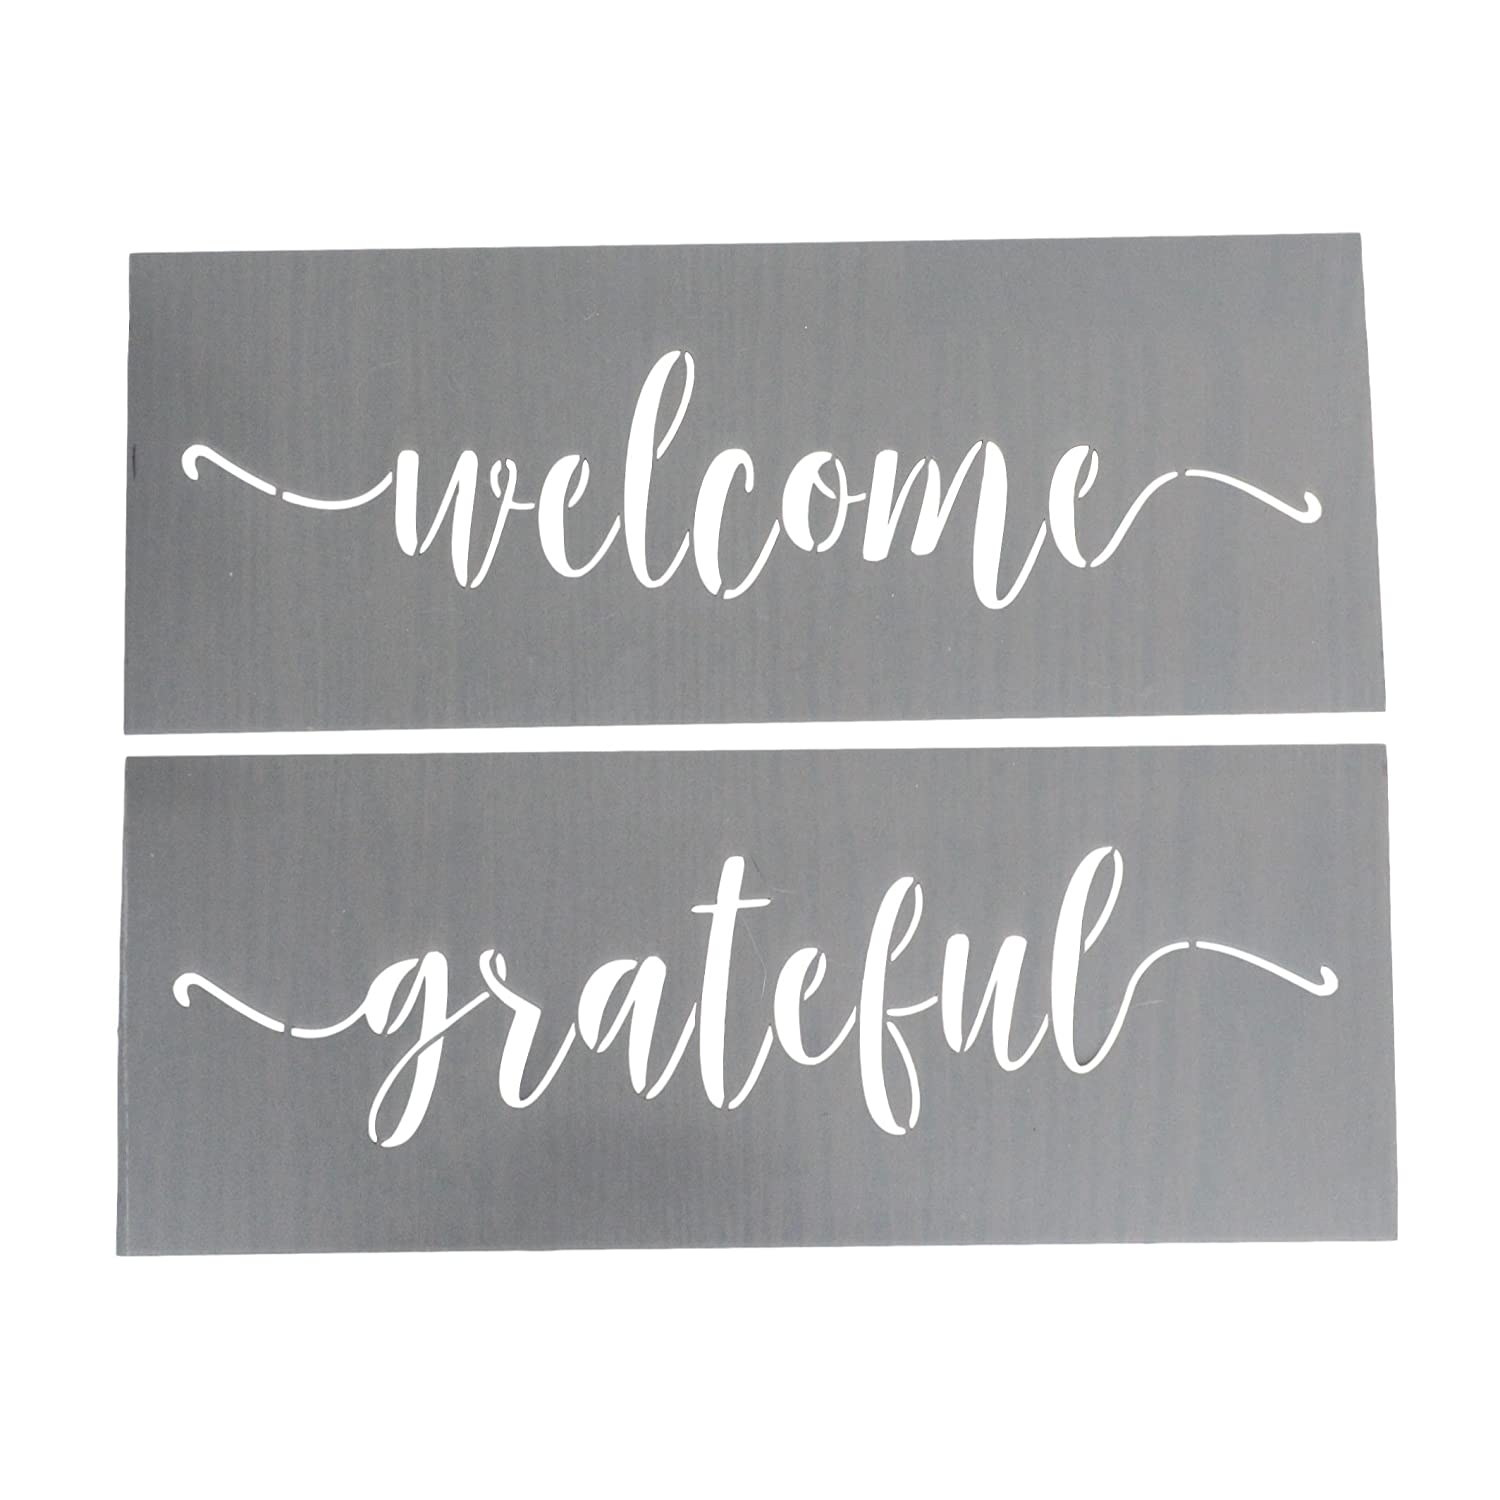 Grateful and Welcome Stencil for Painting on Wood + More - Make a DIY Sign with a Calligraphy Stencil Set - Large Welcome Stencil for DIY Wall Decor - Welcome Stencils and Quote Stencils Are Reusable